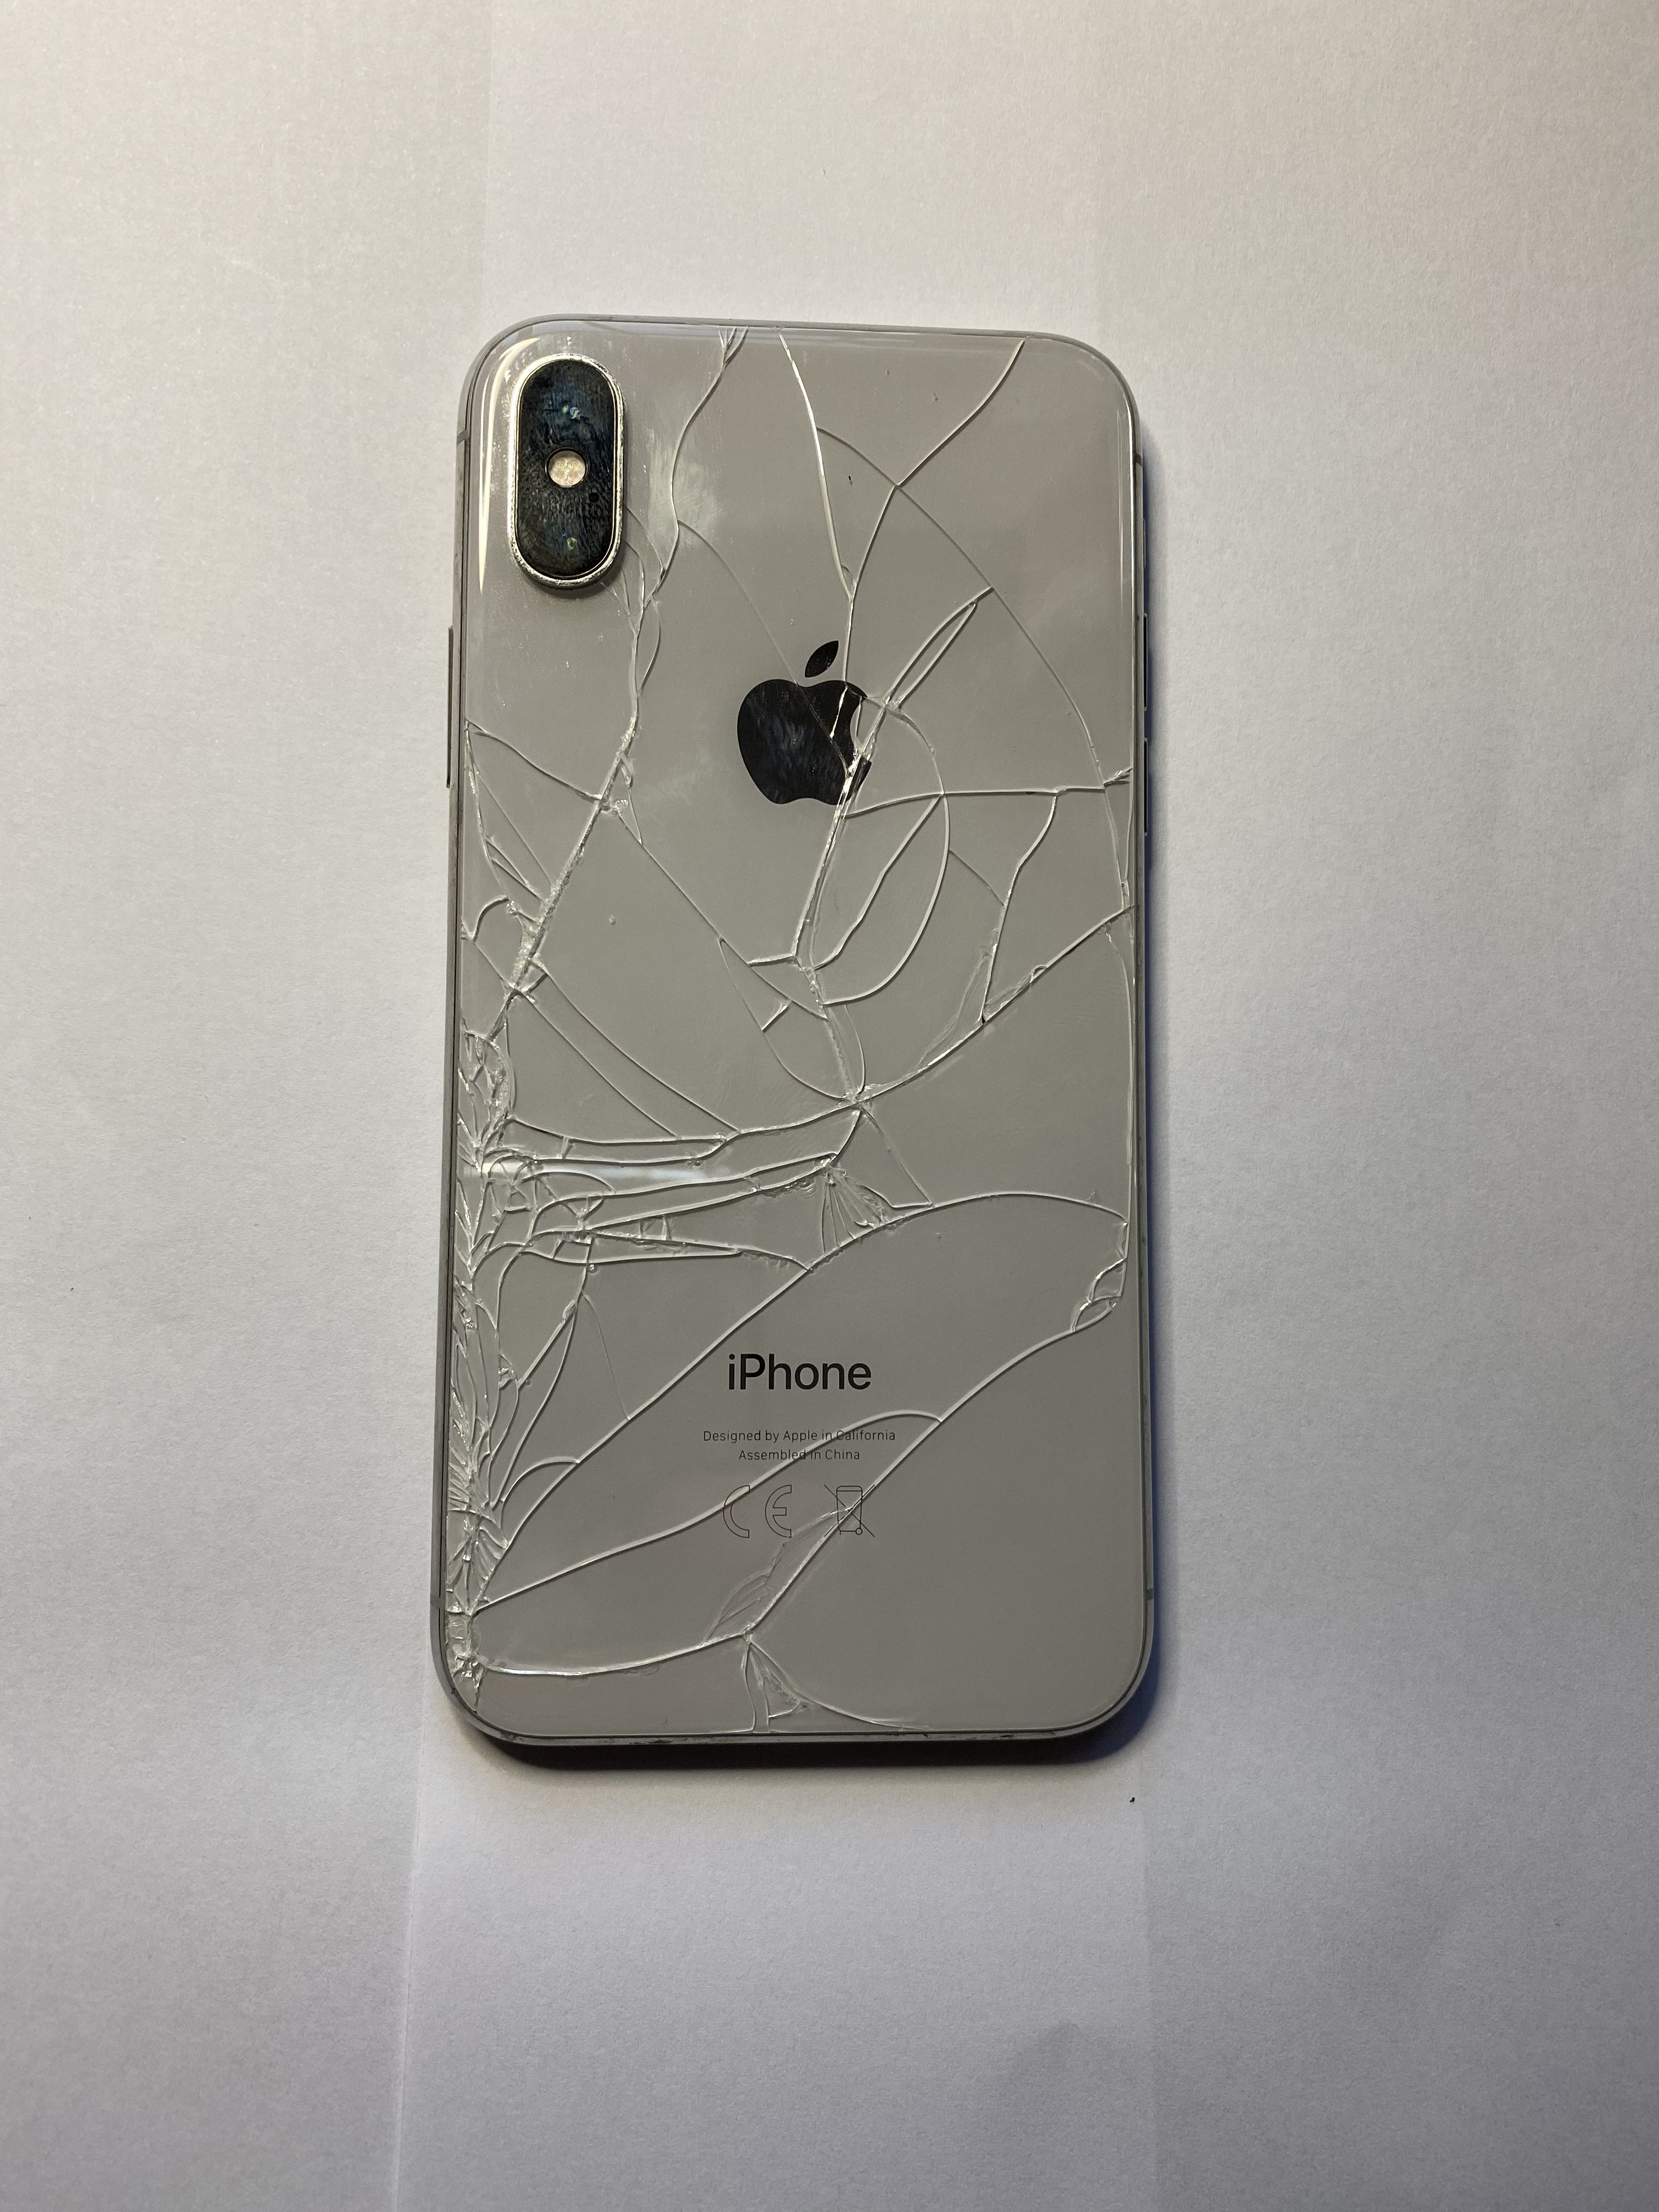 iPhone back cover replacement   Iphone glass, Cracked iphone ...